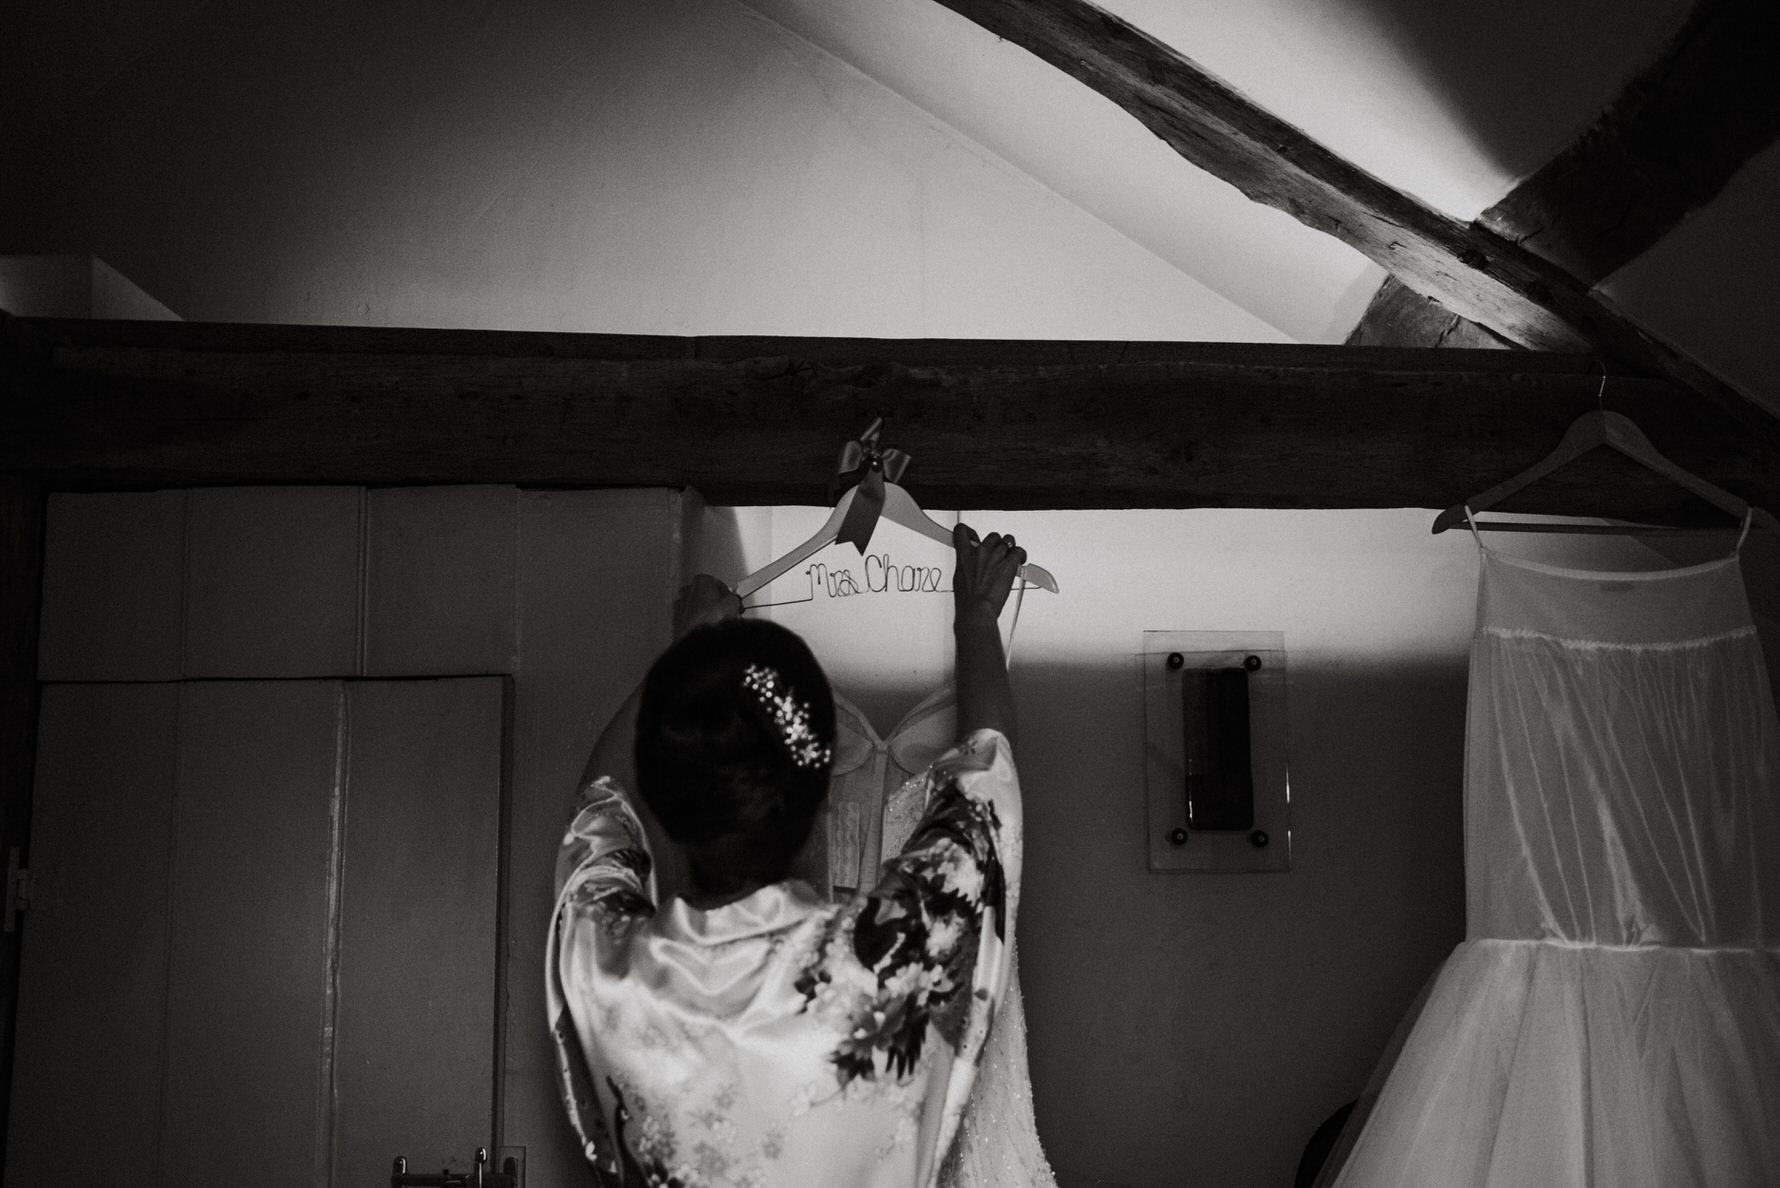 Wedding photojournalism - A bride reaching up for her wedding dress